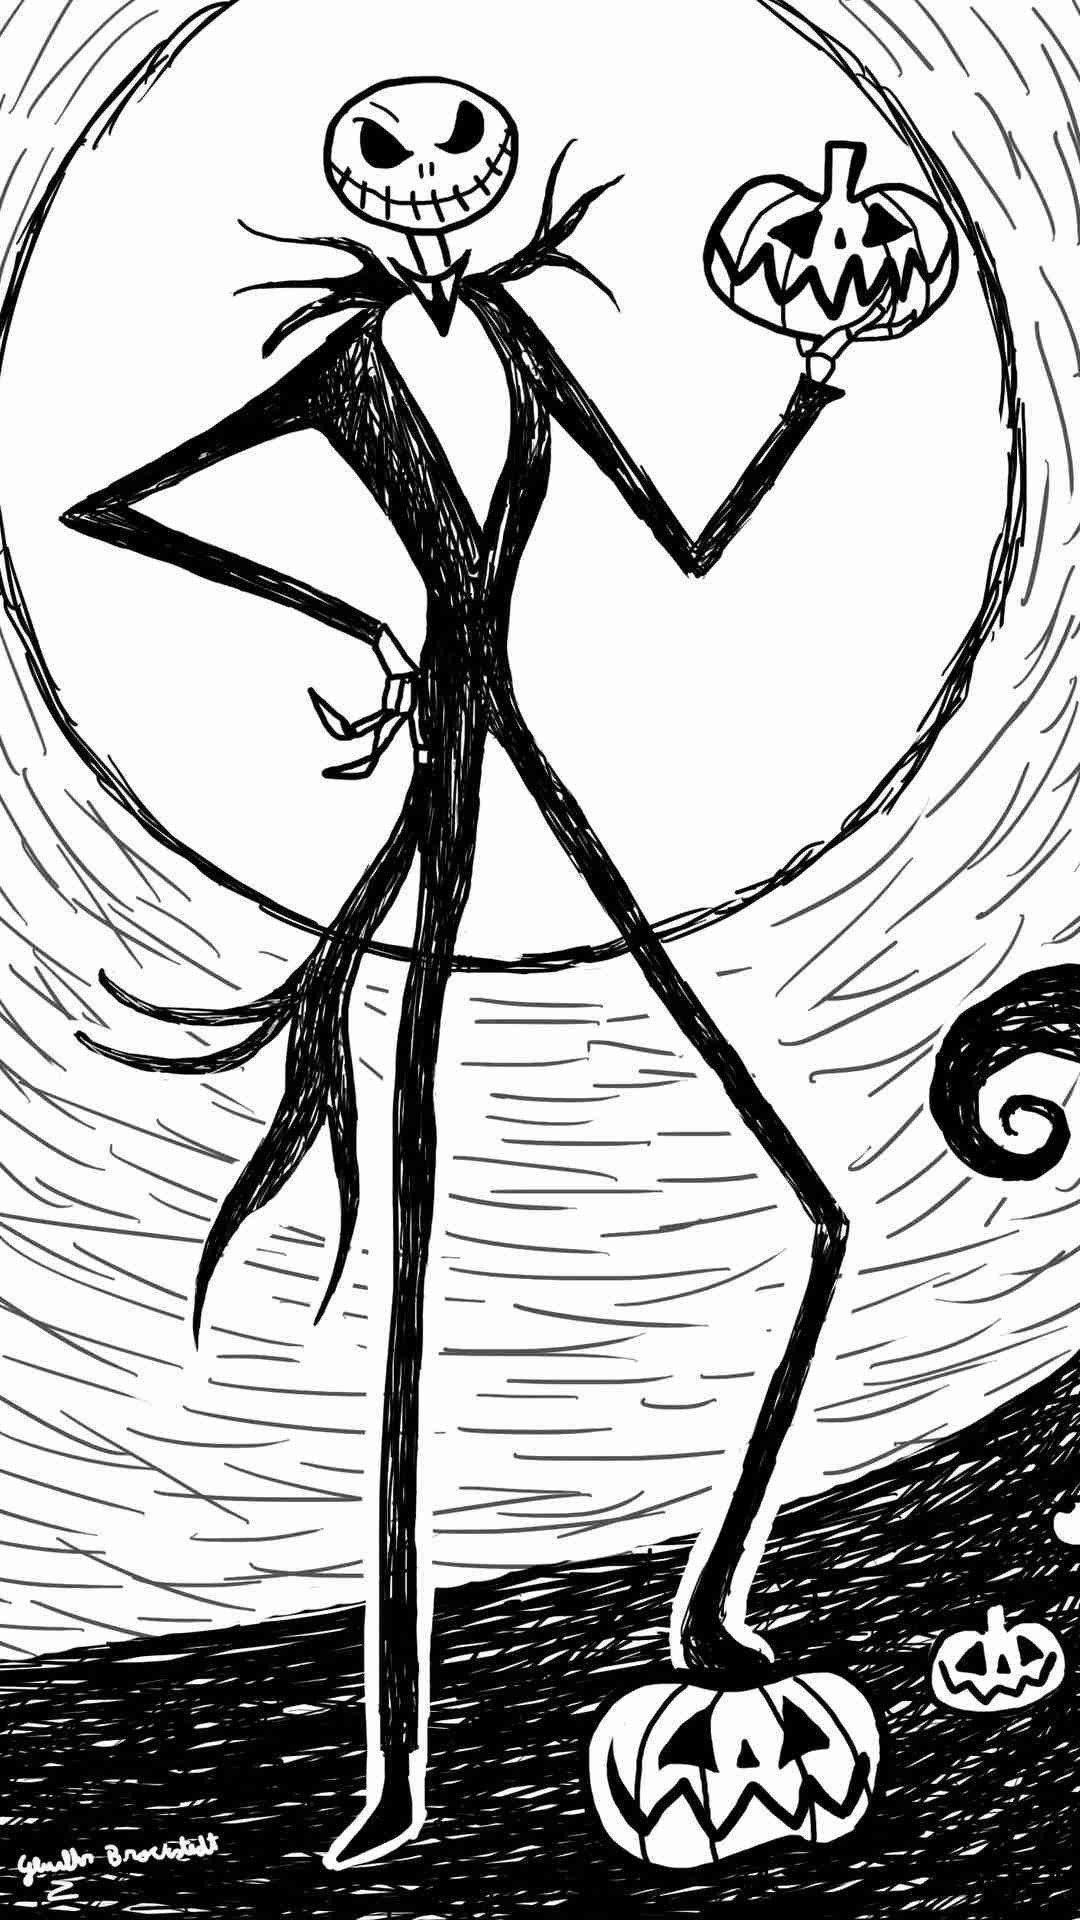 1080x1920 Halloween Jack Skellington Easy Painting 2014 iPhone 6 plus Wallpaper - Nightmare  Before Christmas #2014